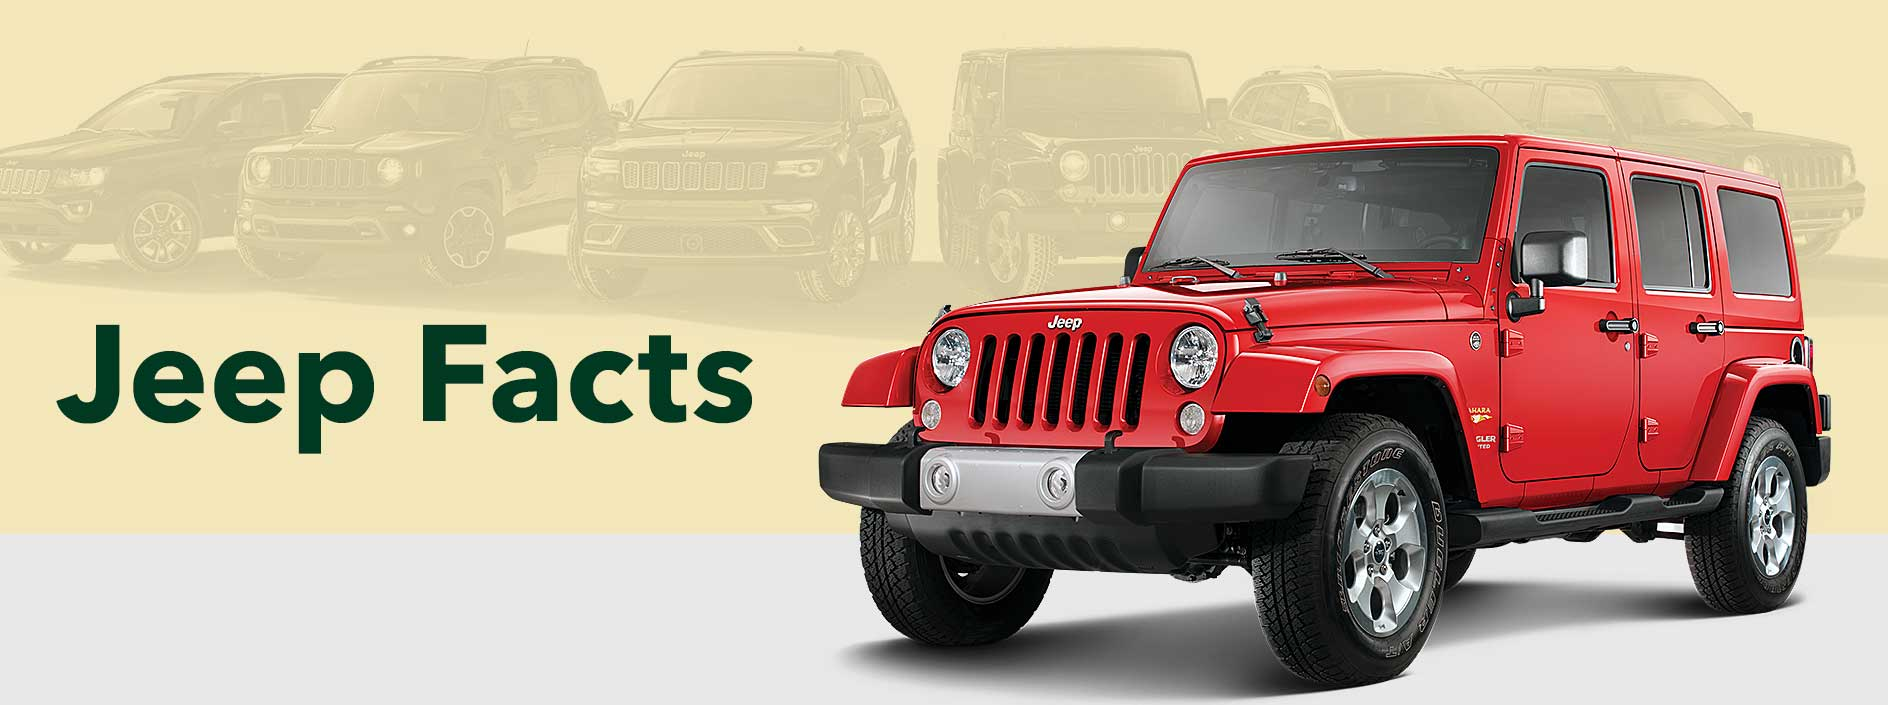 Jeep Facts